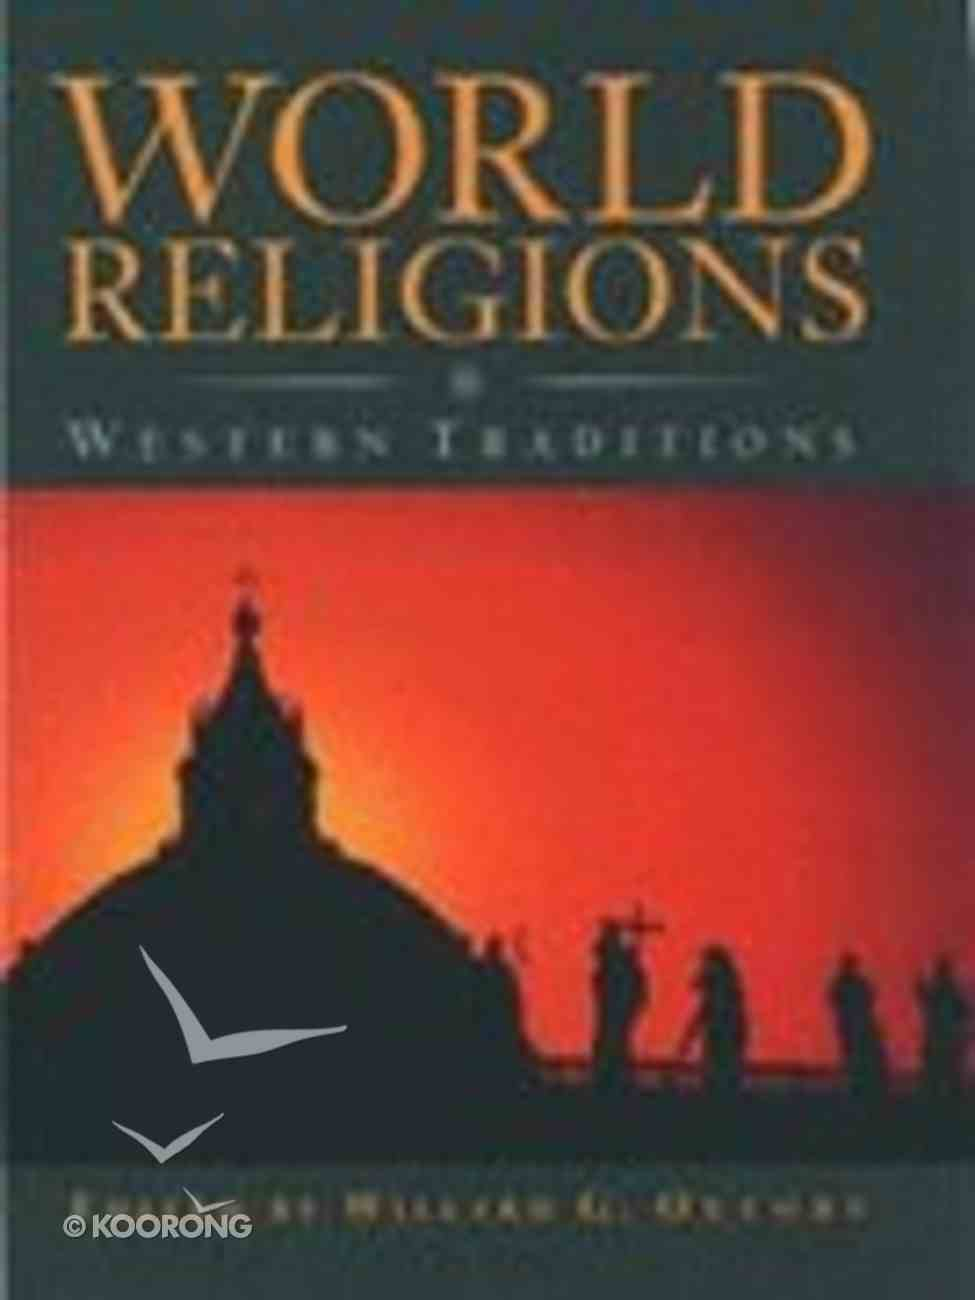 World Religions Western Traditions Paperback